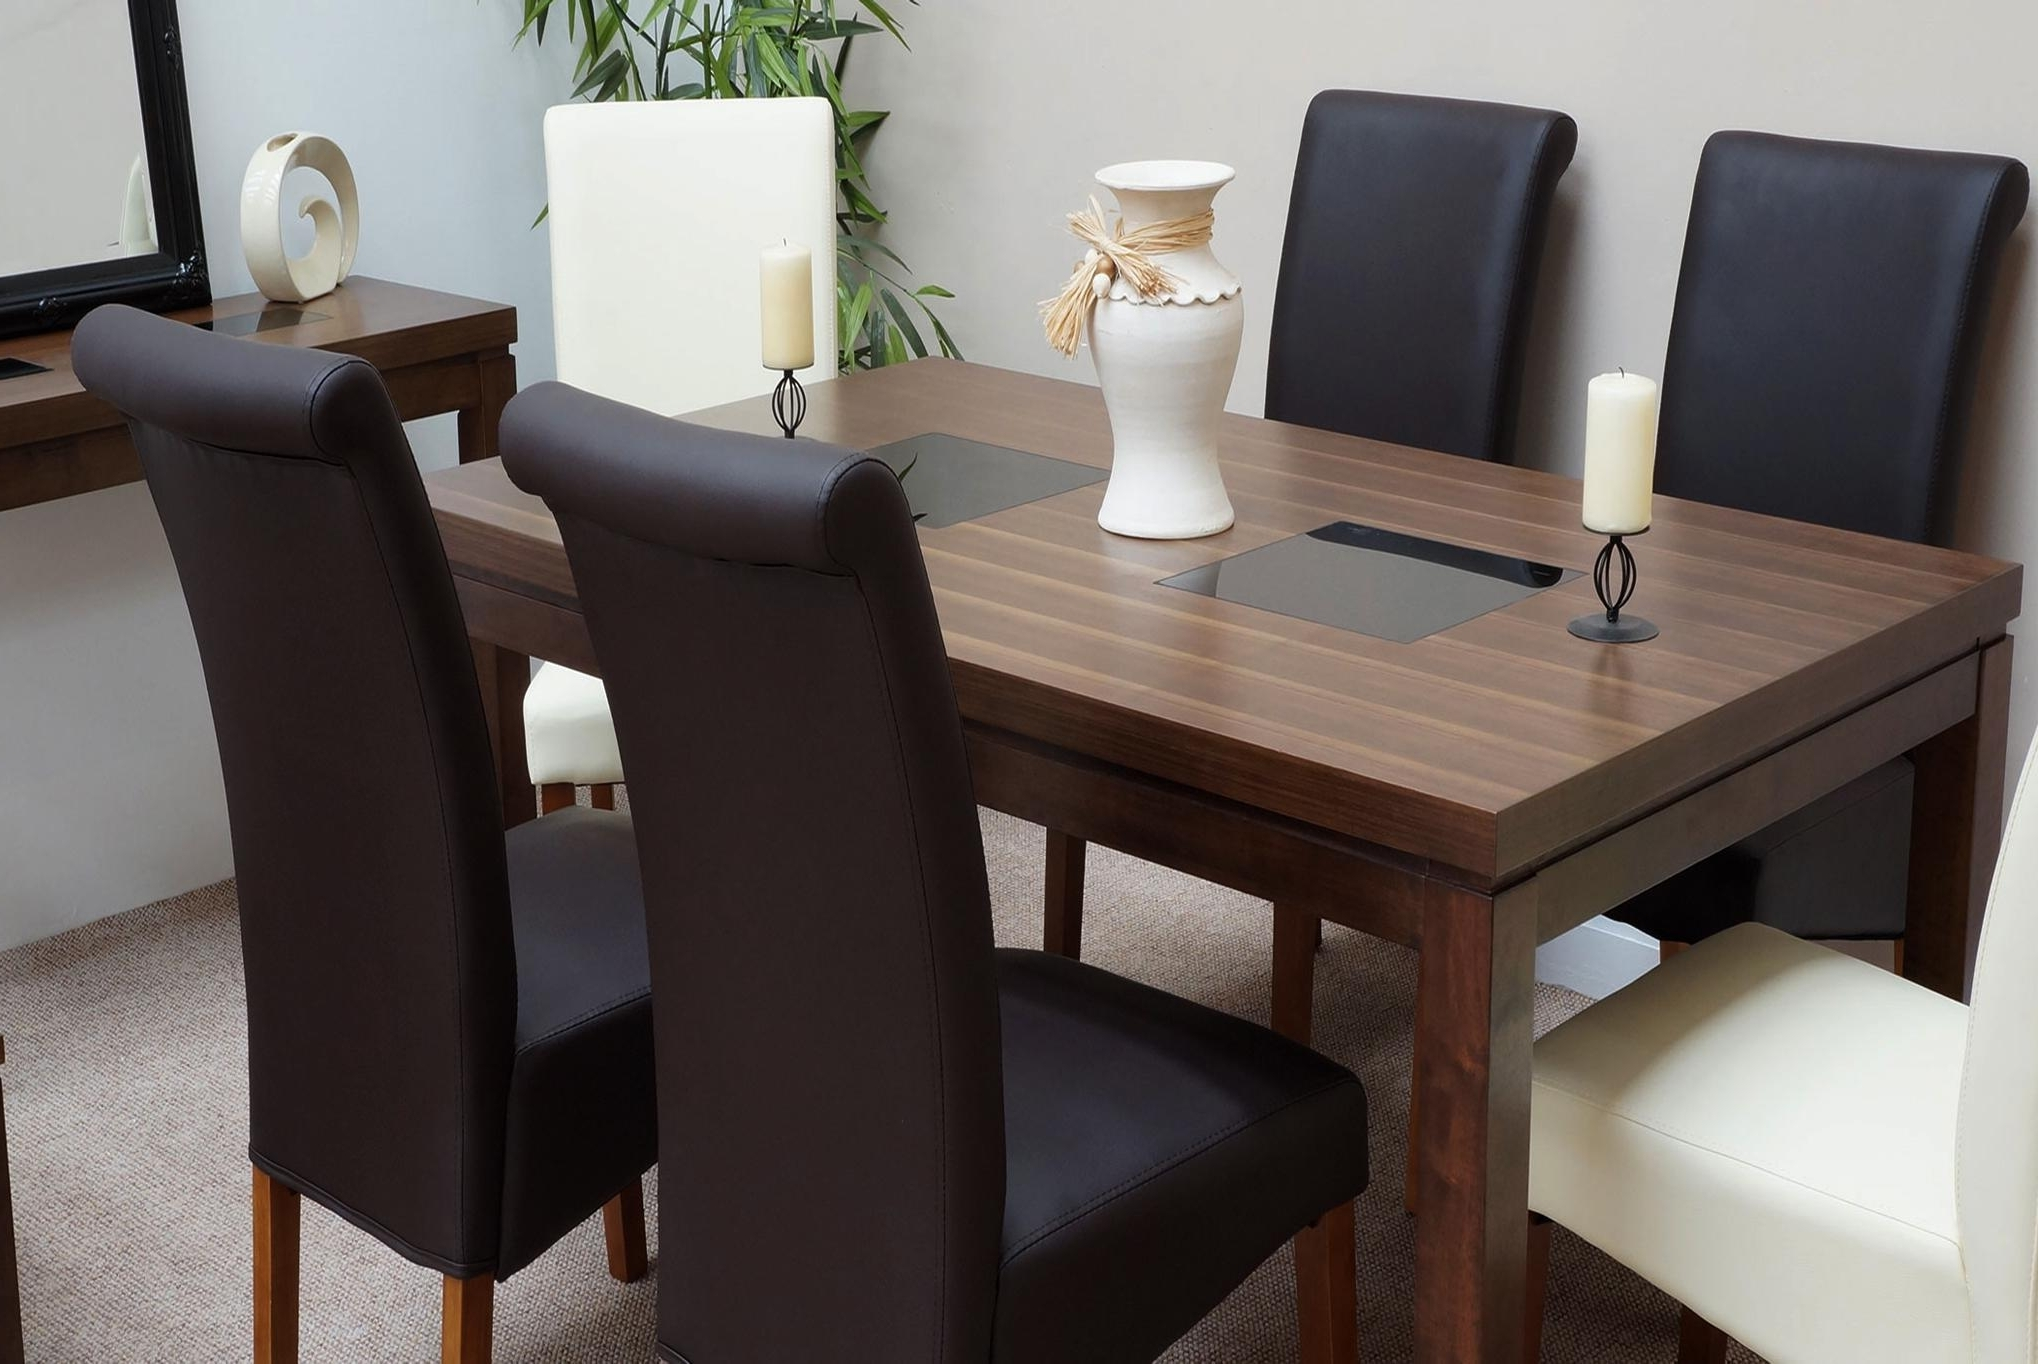 2018 Sydney Walnut 5Ft+ 6 Chairs – Dublin, Ireland Furniture Store Throughout Walnut Dining Table And 6 Chairs (View 3 of 25)